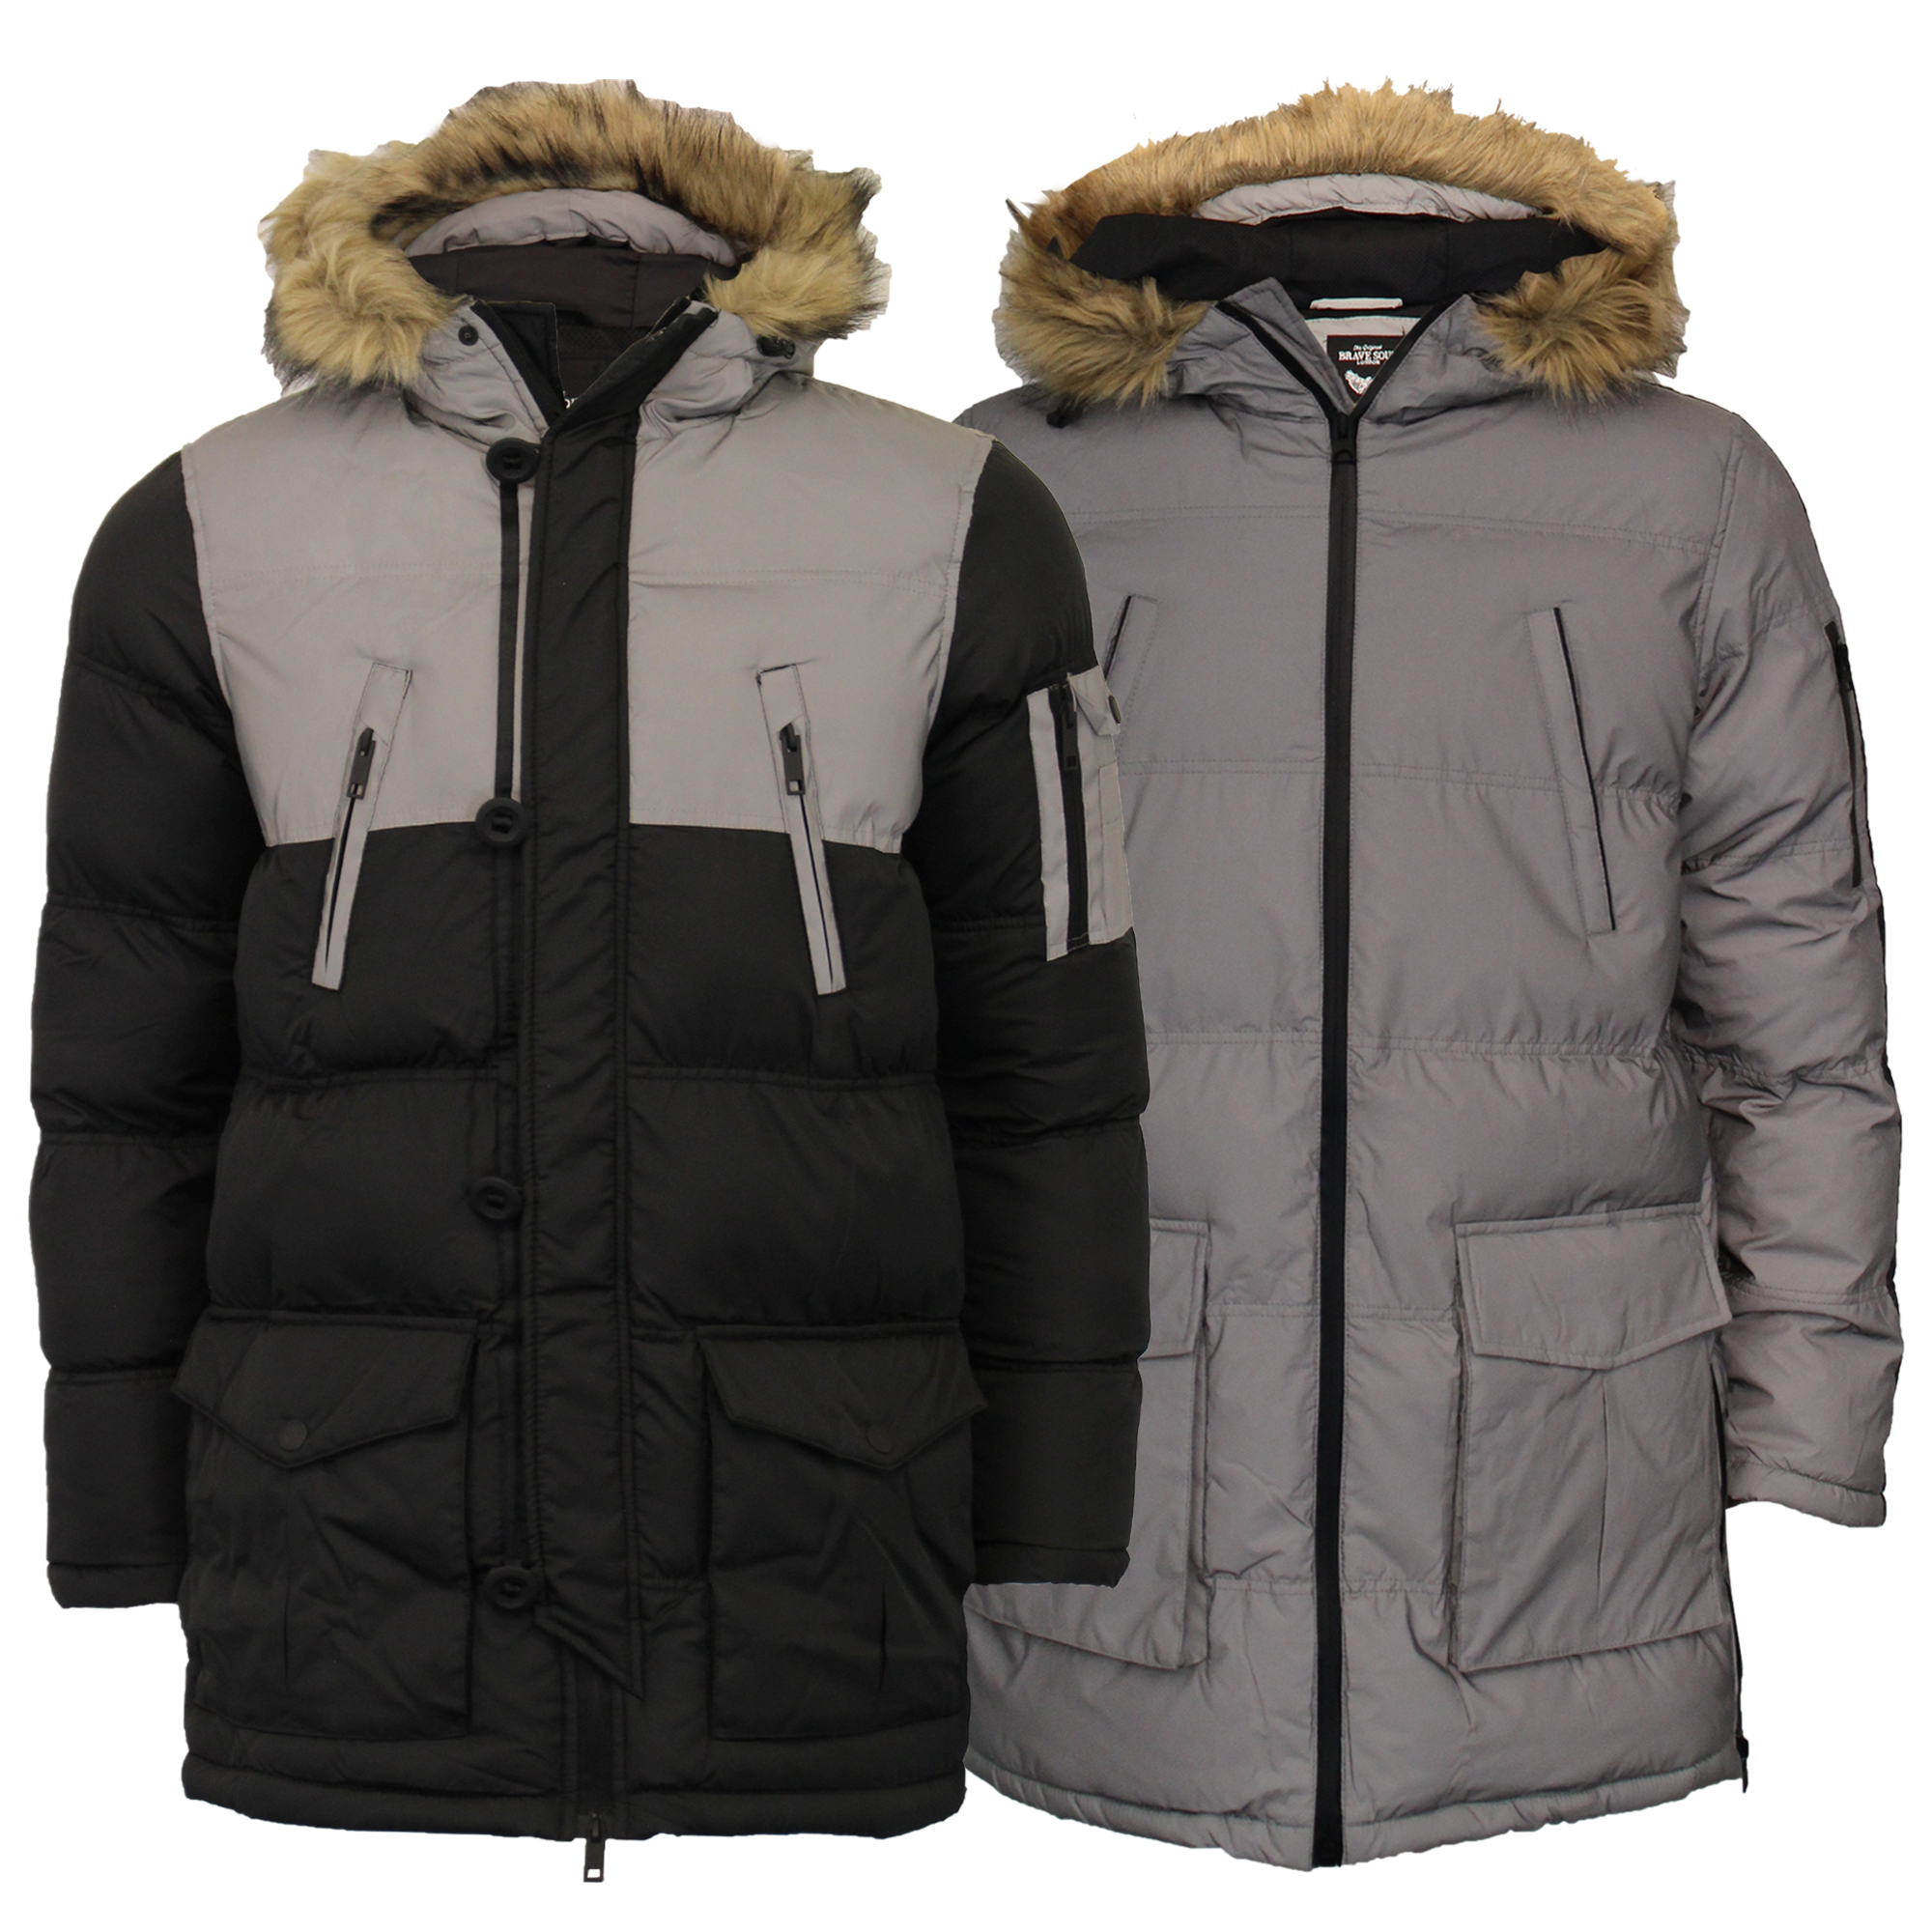 Mens-Reflective-Long-Bubble-Parka-Jacket-Brave-Soul-Coat-Hooded-Padded-Winter thumbnail 6